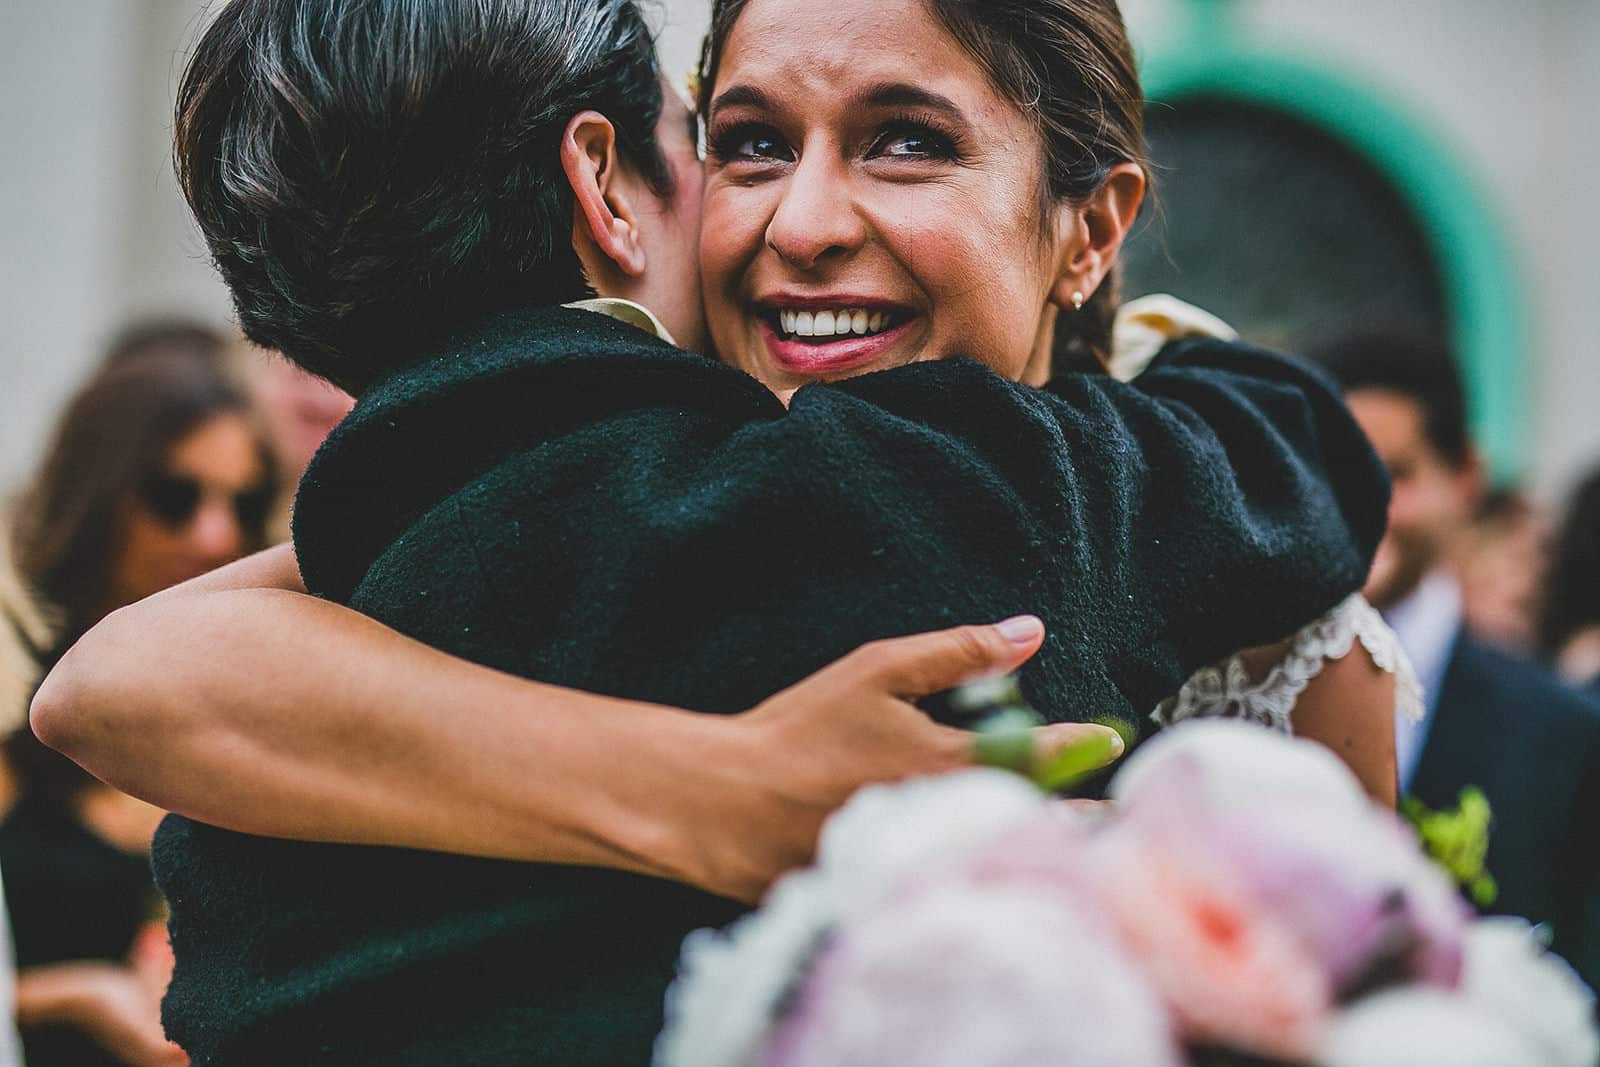 the bride hugging crying her friend in a wedding in barcelona